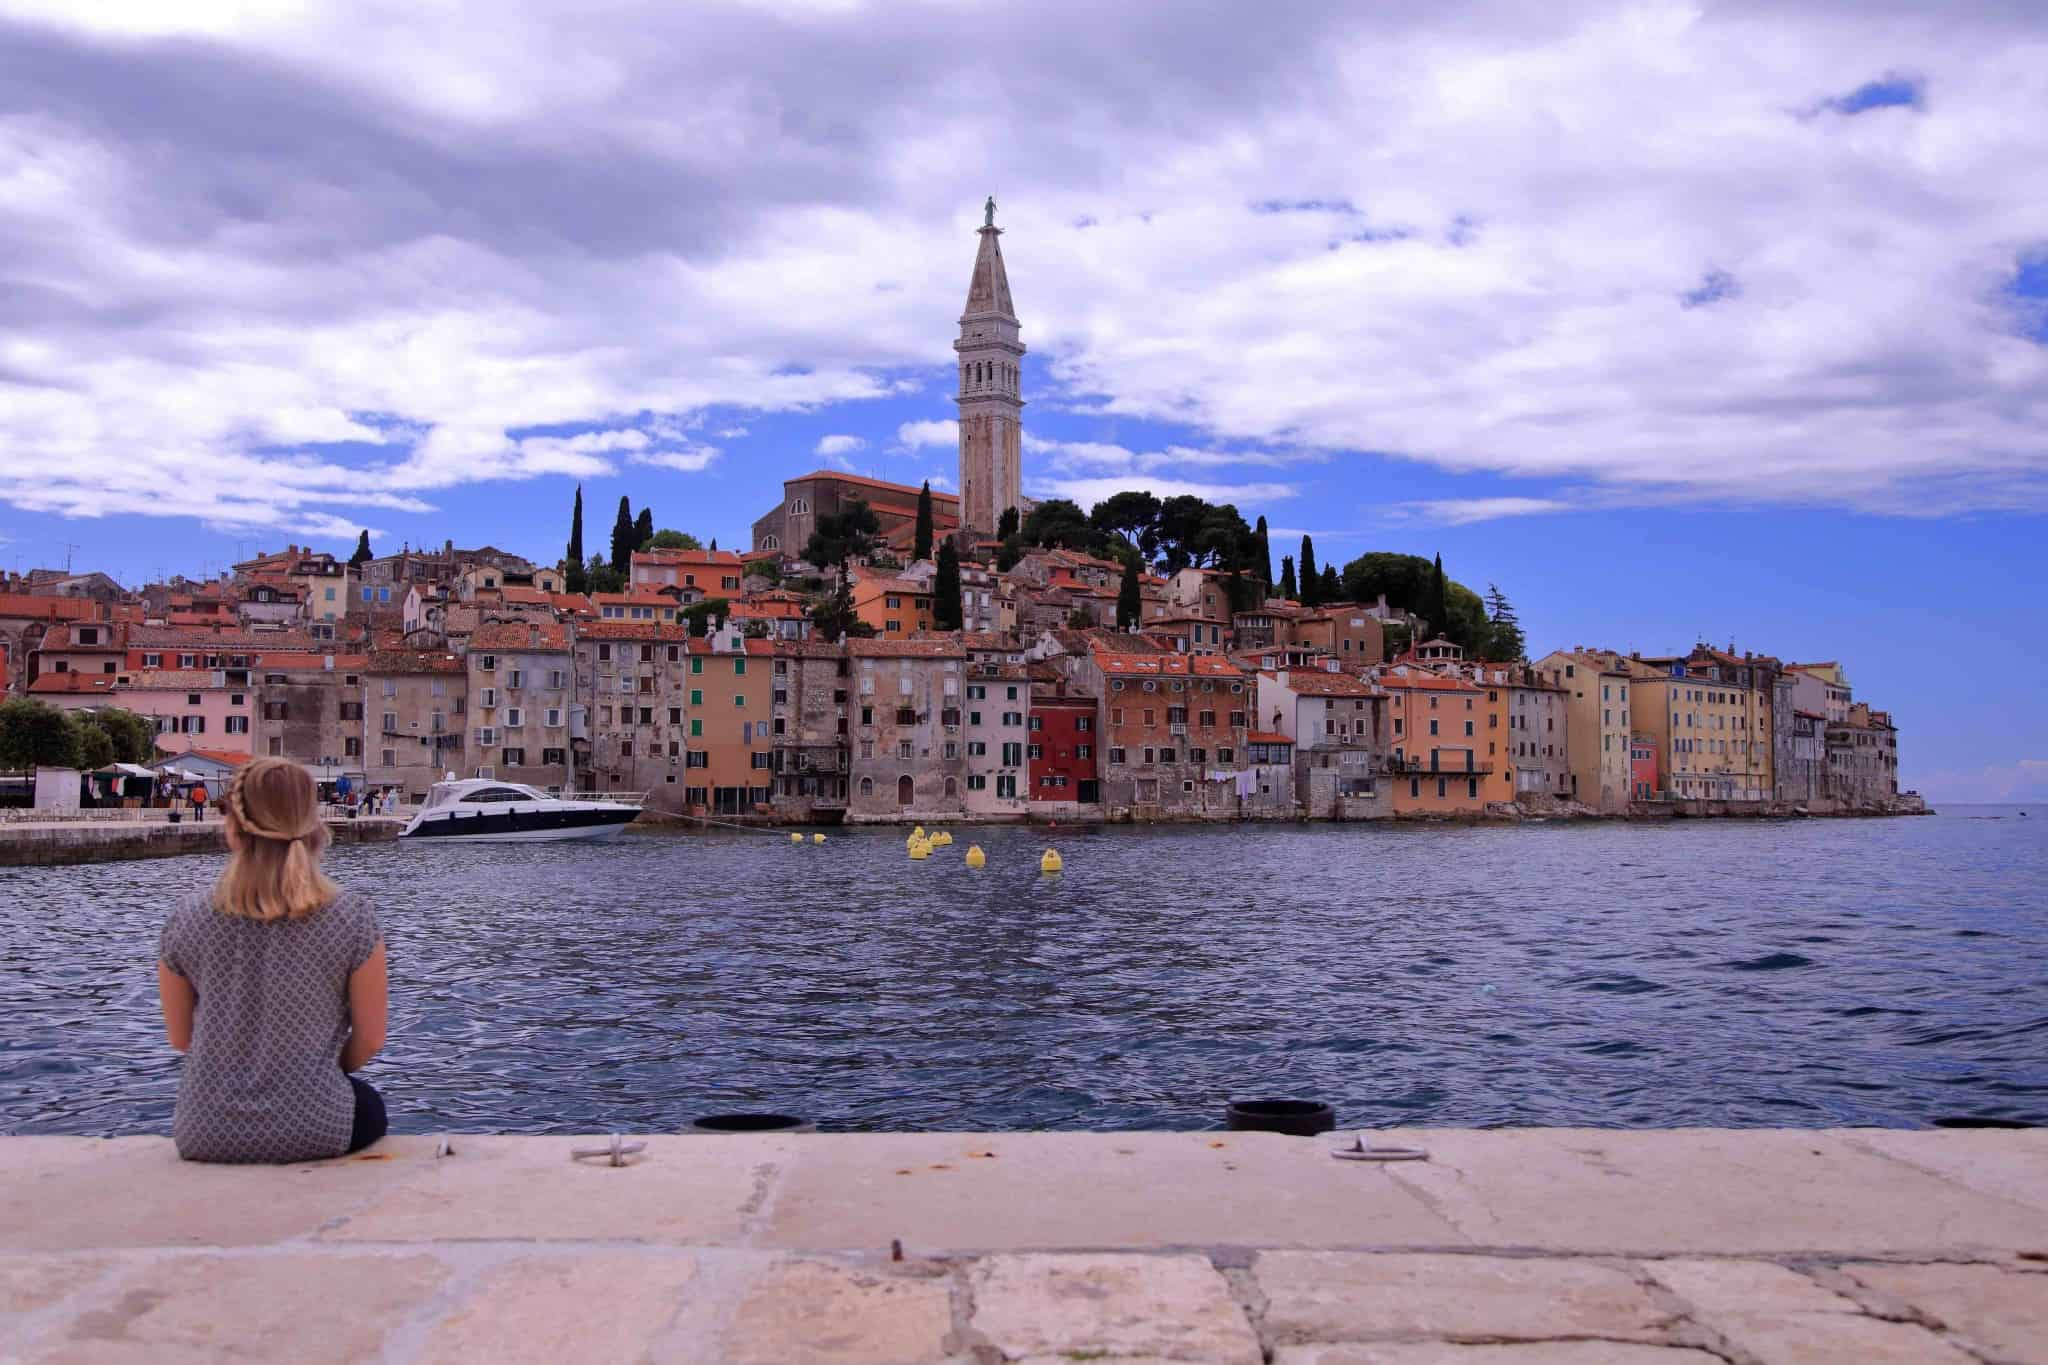 Get to Rovinj on your Croatian Vacation